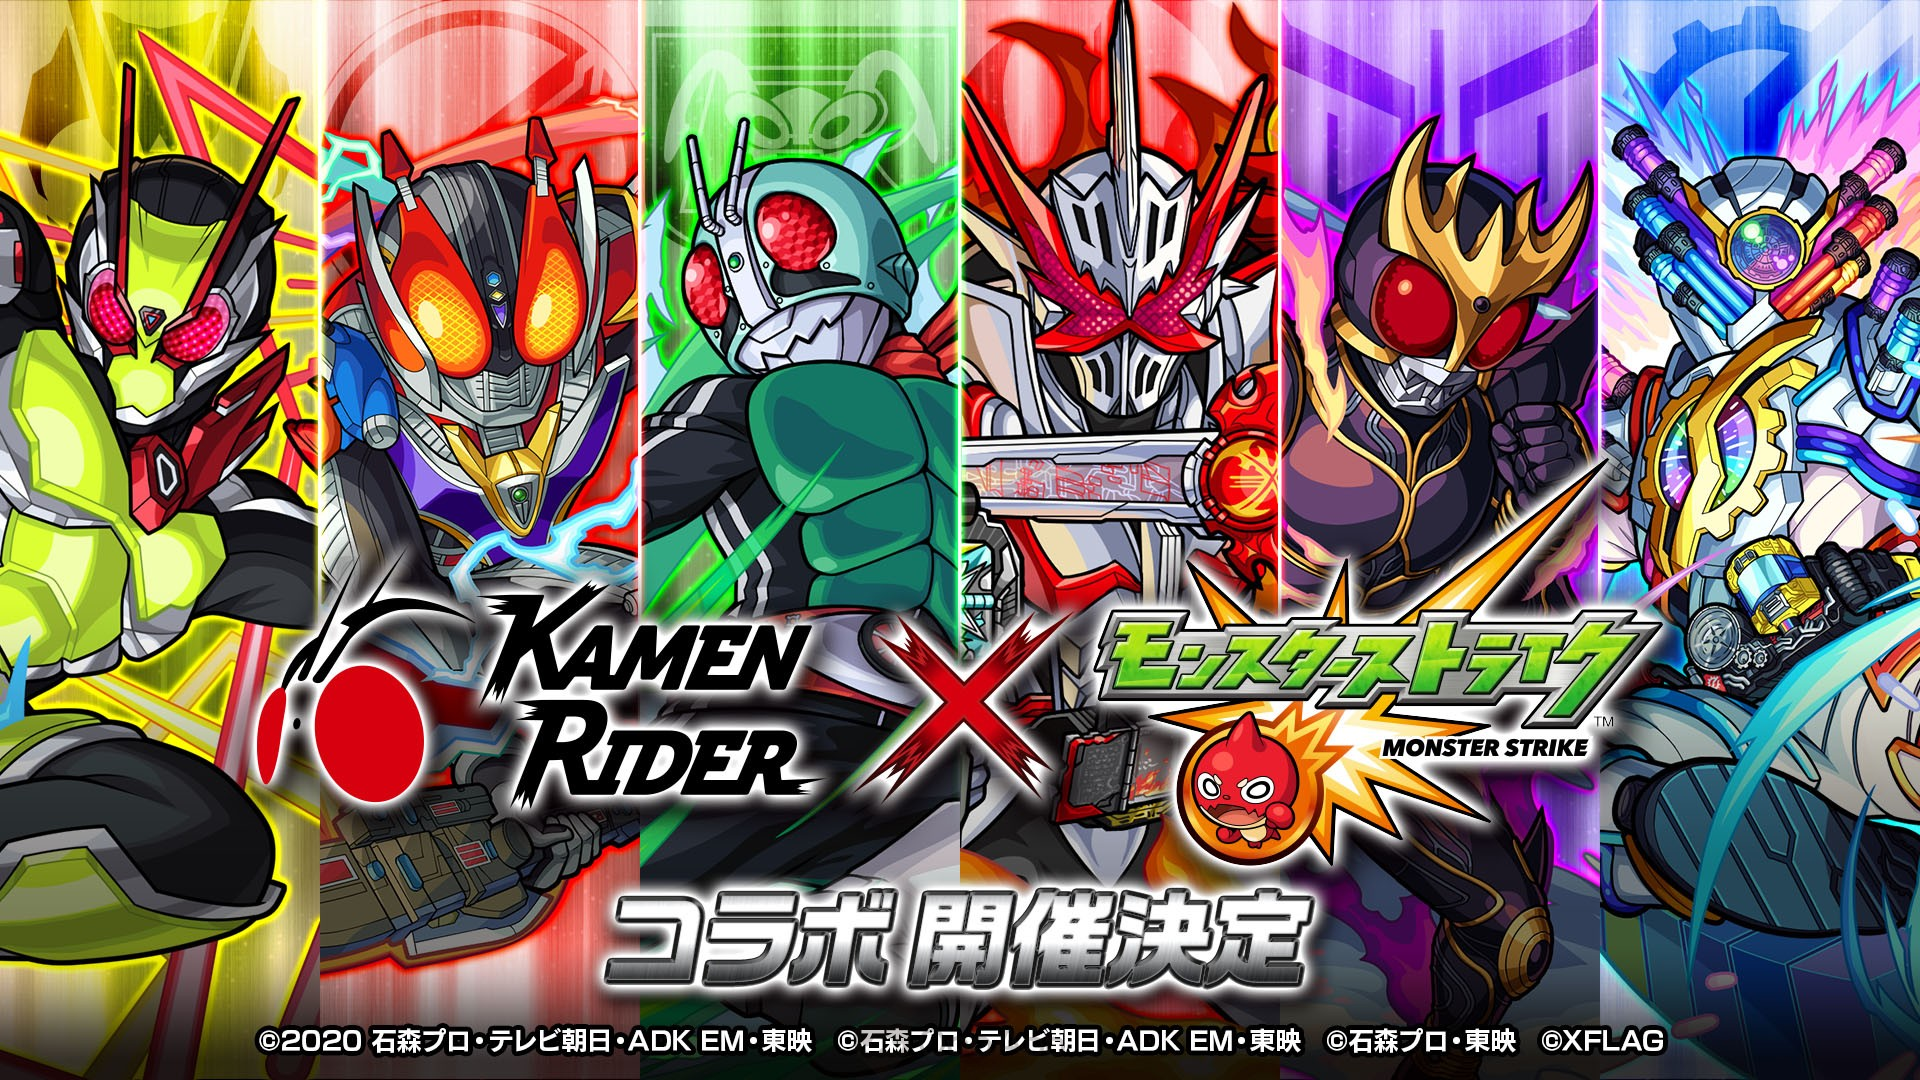 """Monster Strike"" x ""Kamen Rider"" Collaboration Announced for March 14"